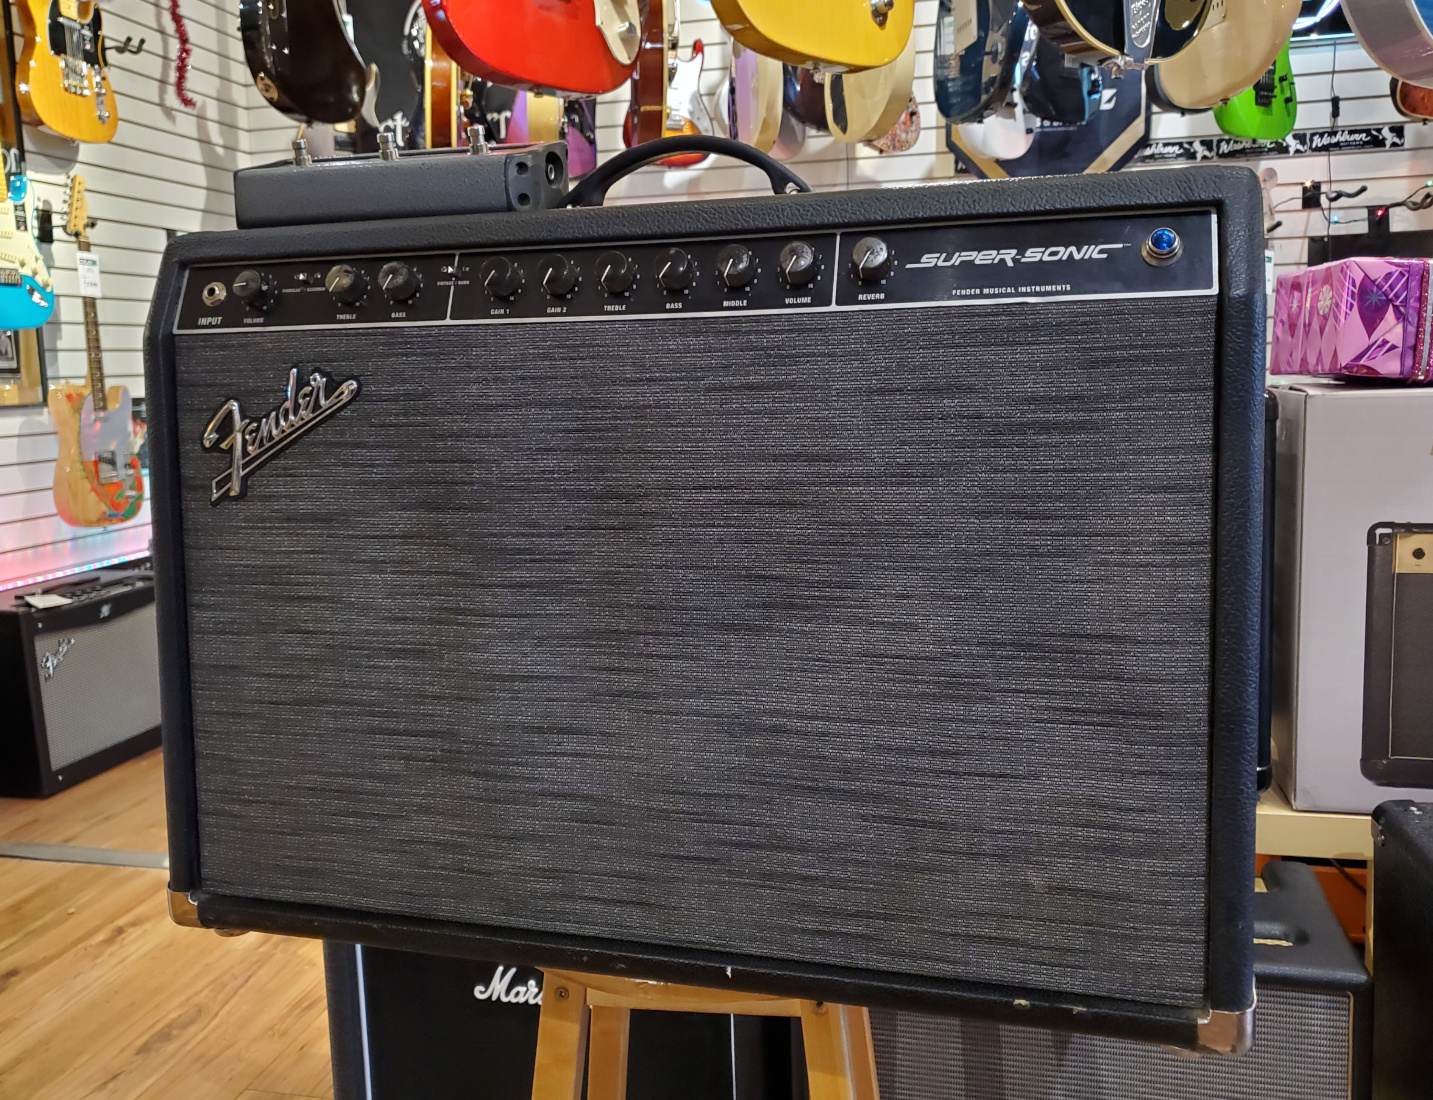 USED Fender Supersonic Tube Amp w/FSTW